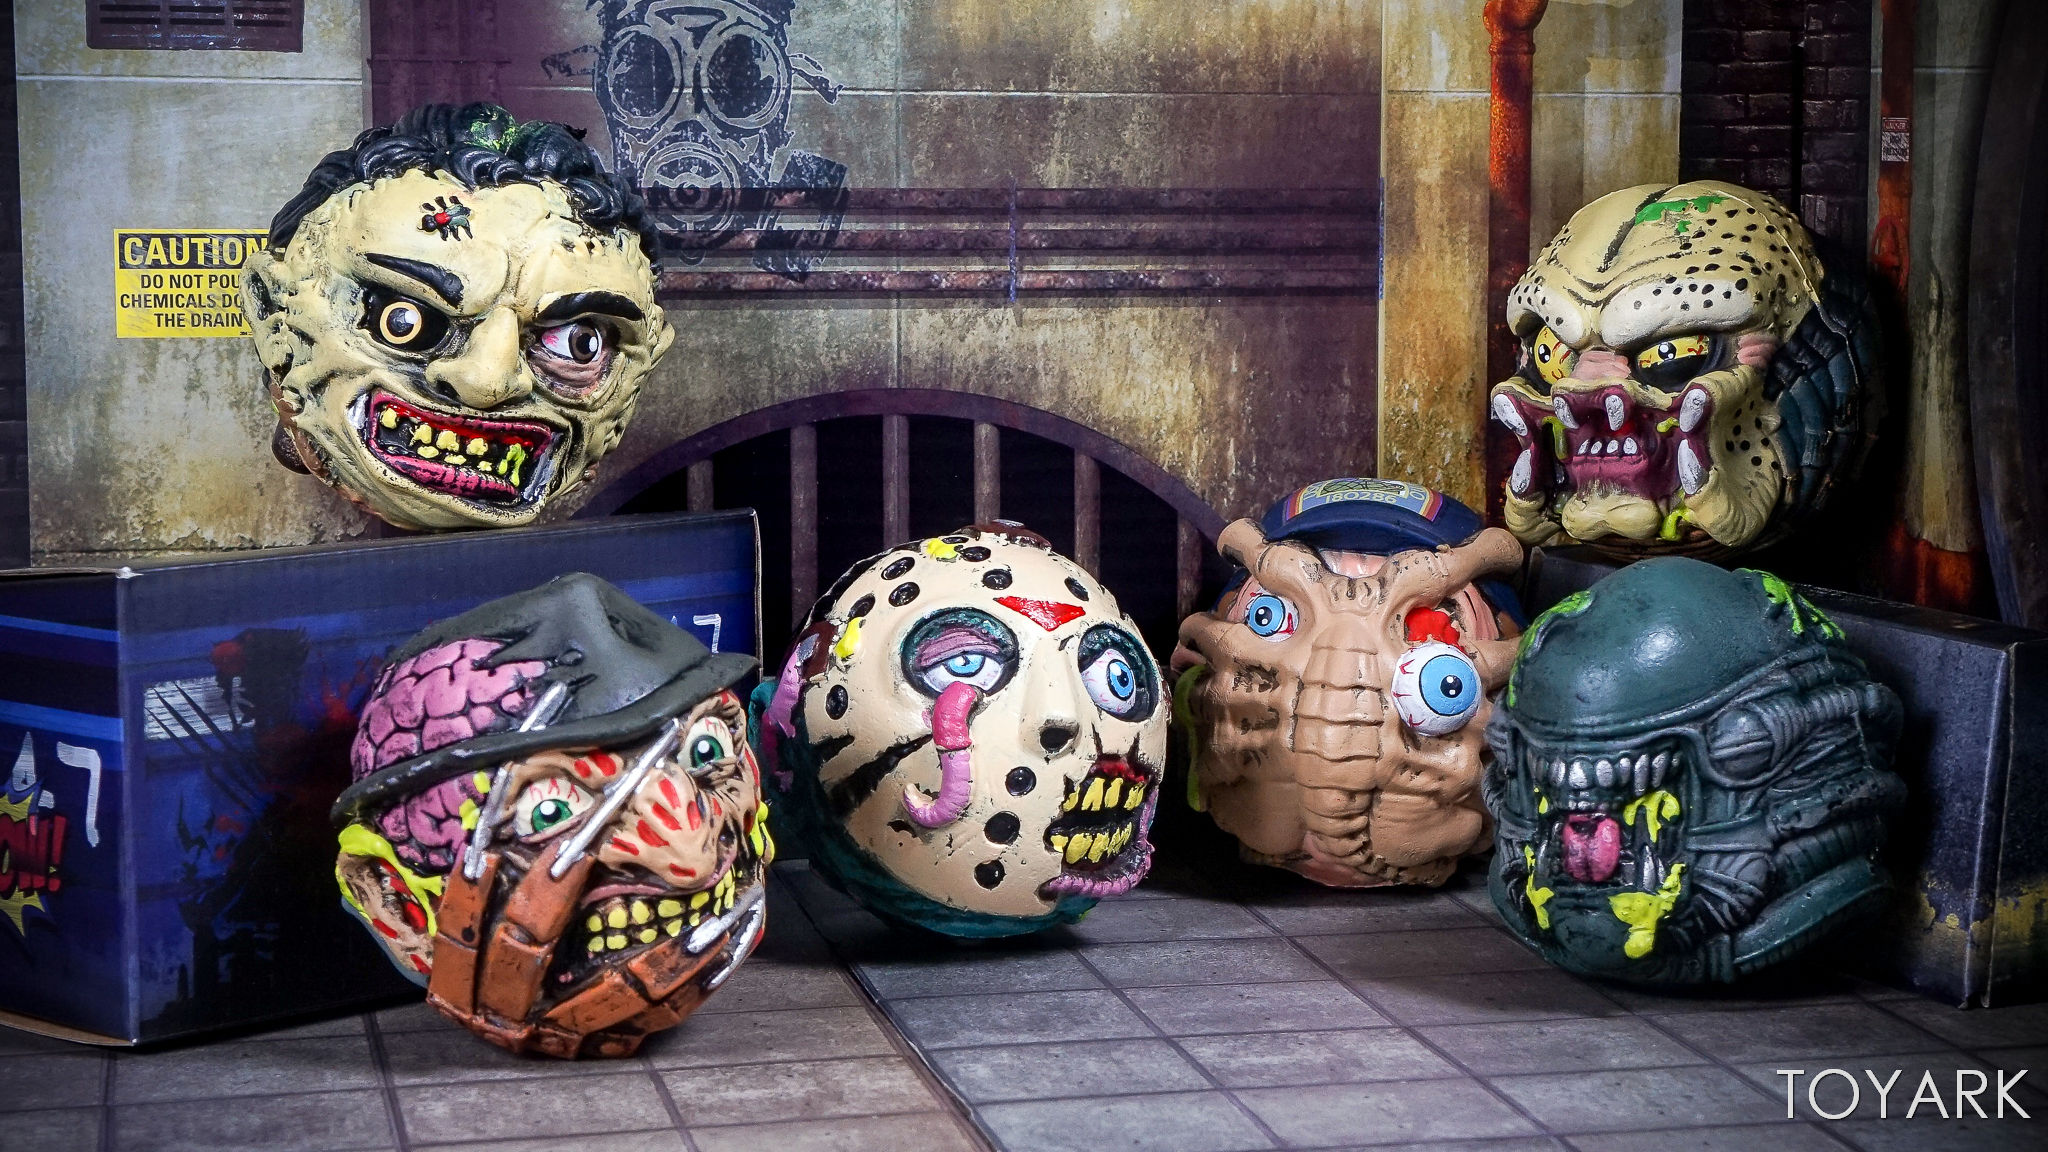 http://news.toyark.com/wp-content/uploads/sites/4/2017/09/Kidrobot-Horror-and-Sci-Fi-Madballs-039.jpg